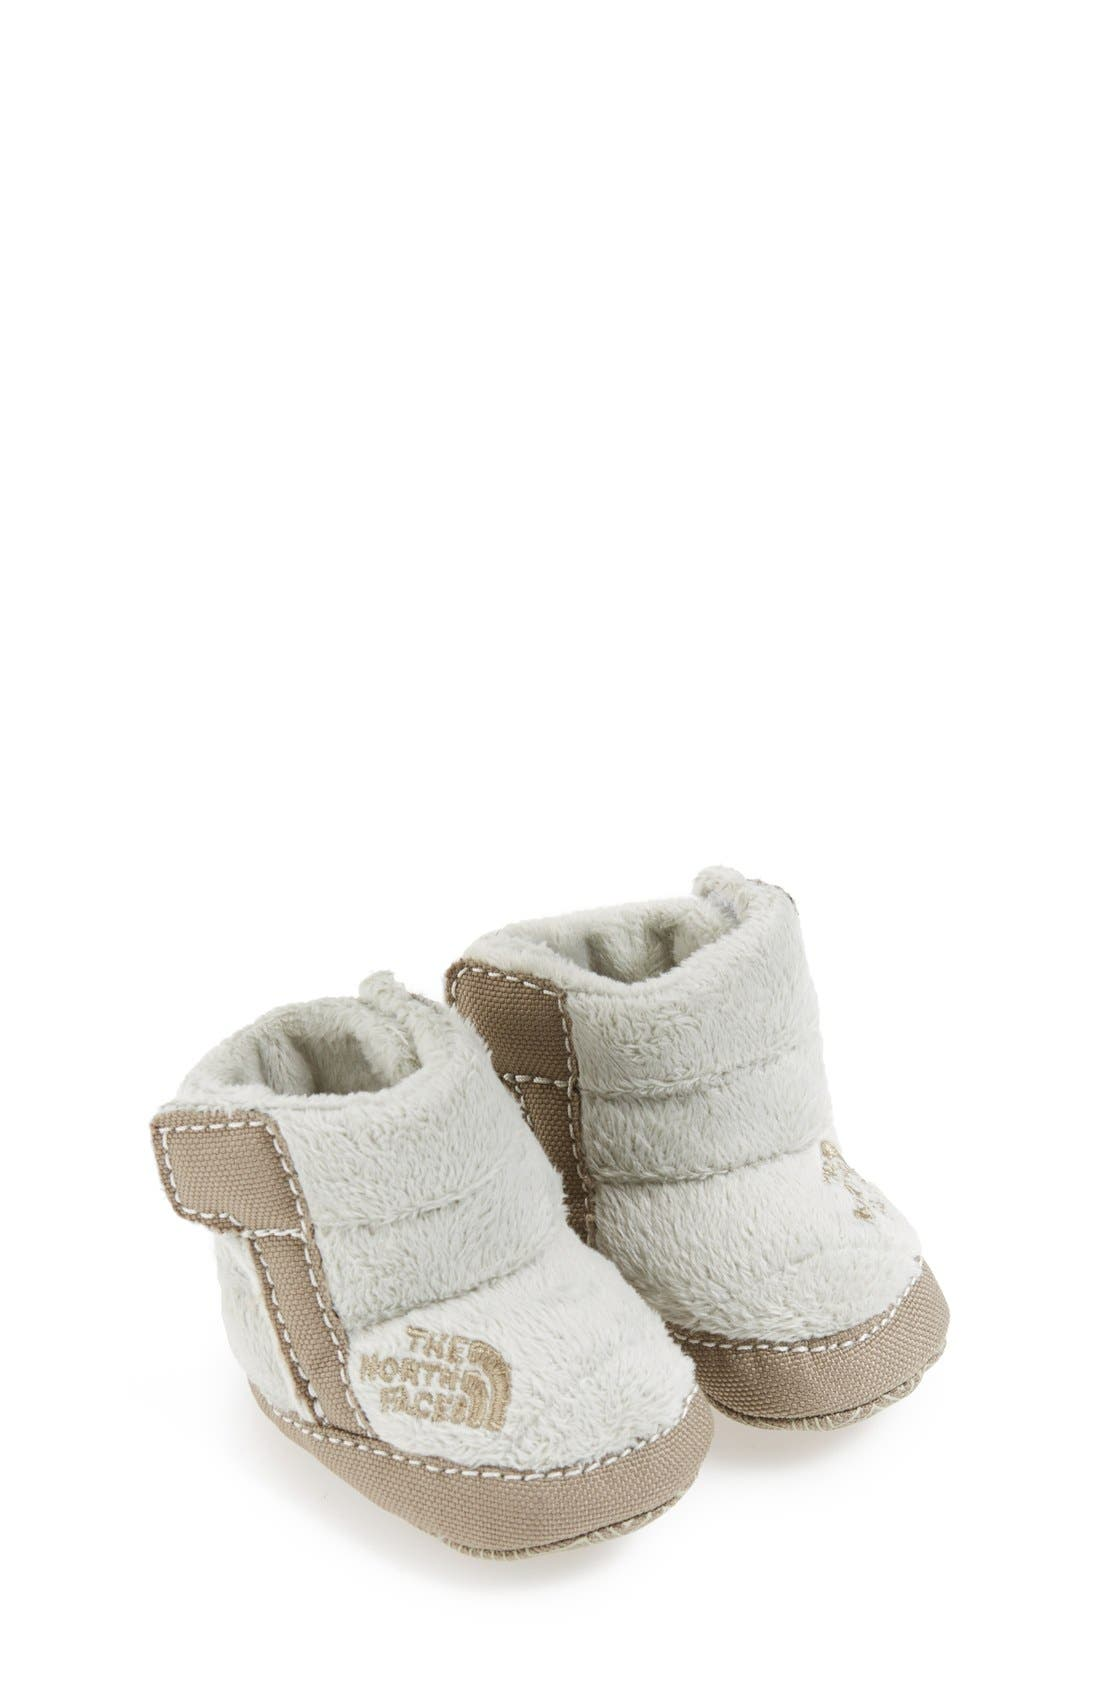 Alternate Image 1 Selected - The North Face Fleece Bootie (Baby & Walker)